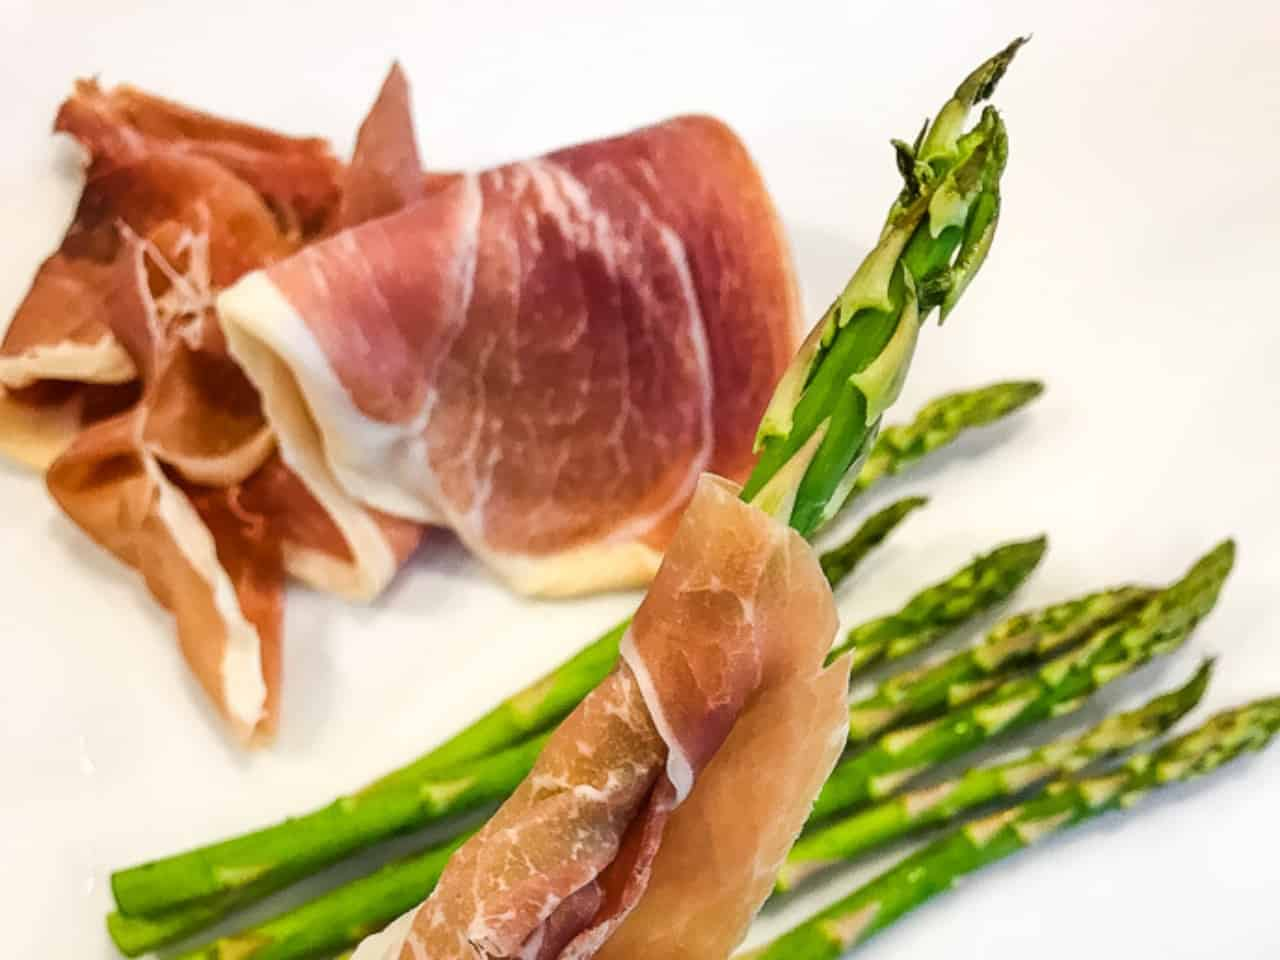 asparagus with prosciutto wrapped around it